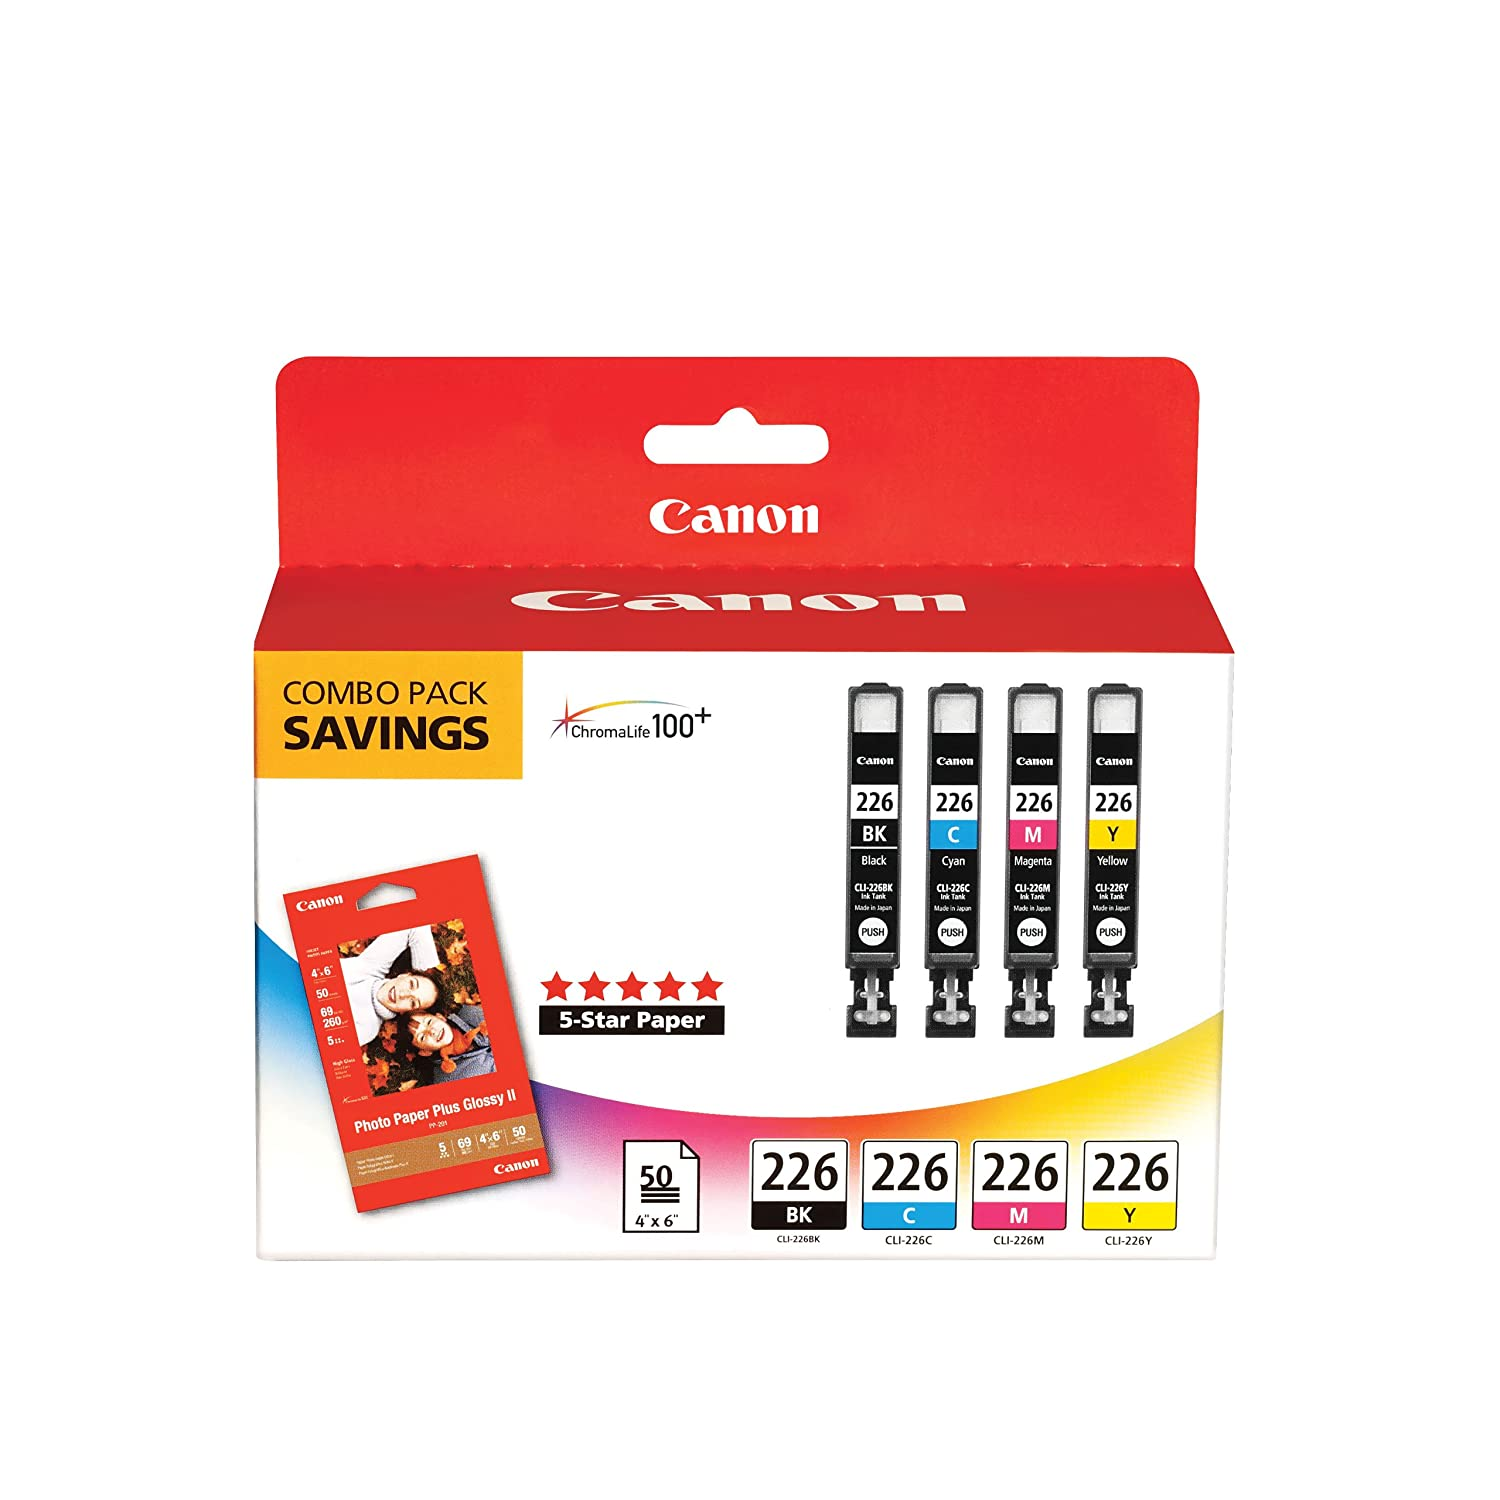 """CLI226 Color Pack with Photo Paper 50 Sheets """"Canon CLI226 Color Pack with Photo Paper 50 Sheets Compatible to iP4820, MG5220, MG5120, MG6120, MG8120, MX882, iX6520, iP4920, MG5320, MG6220, MG8220, MX892"""""""